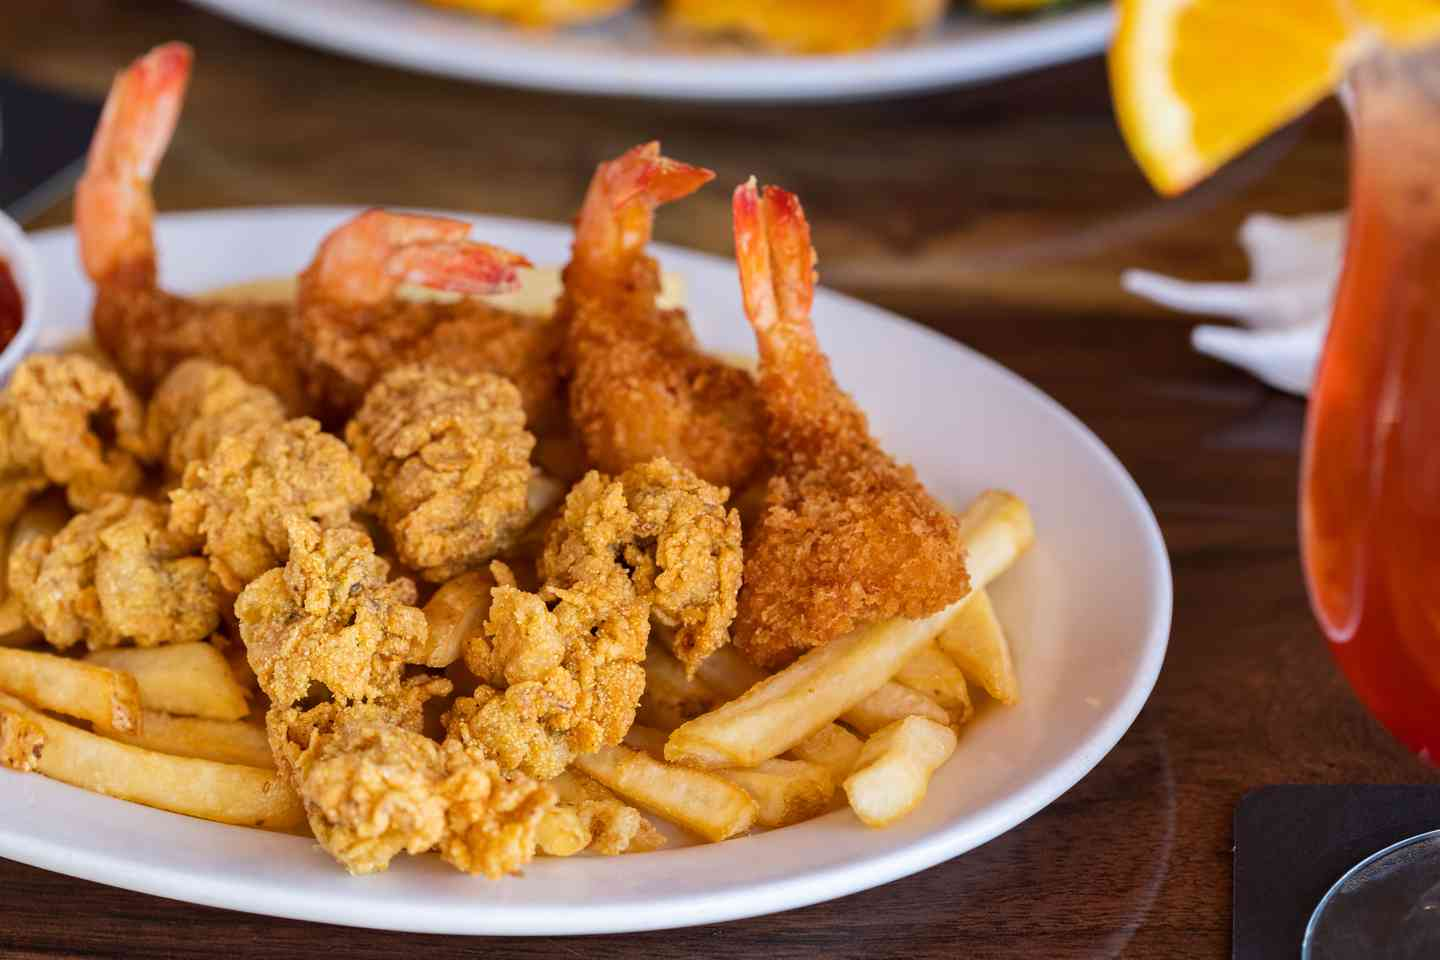 Fried Shrimp & Fried Oysters